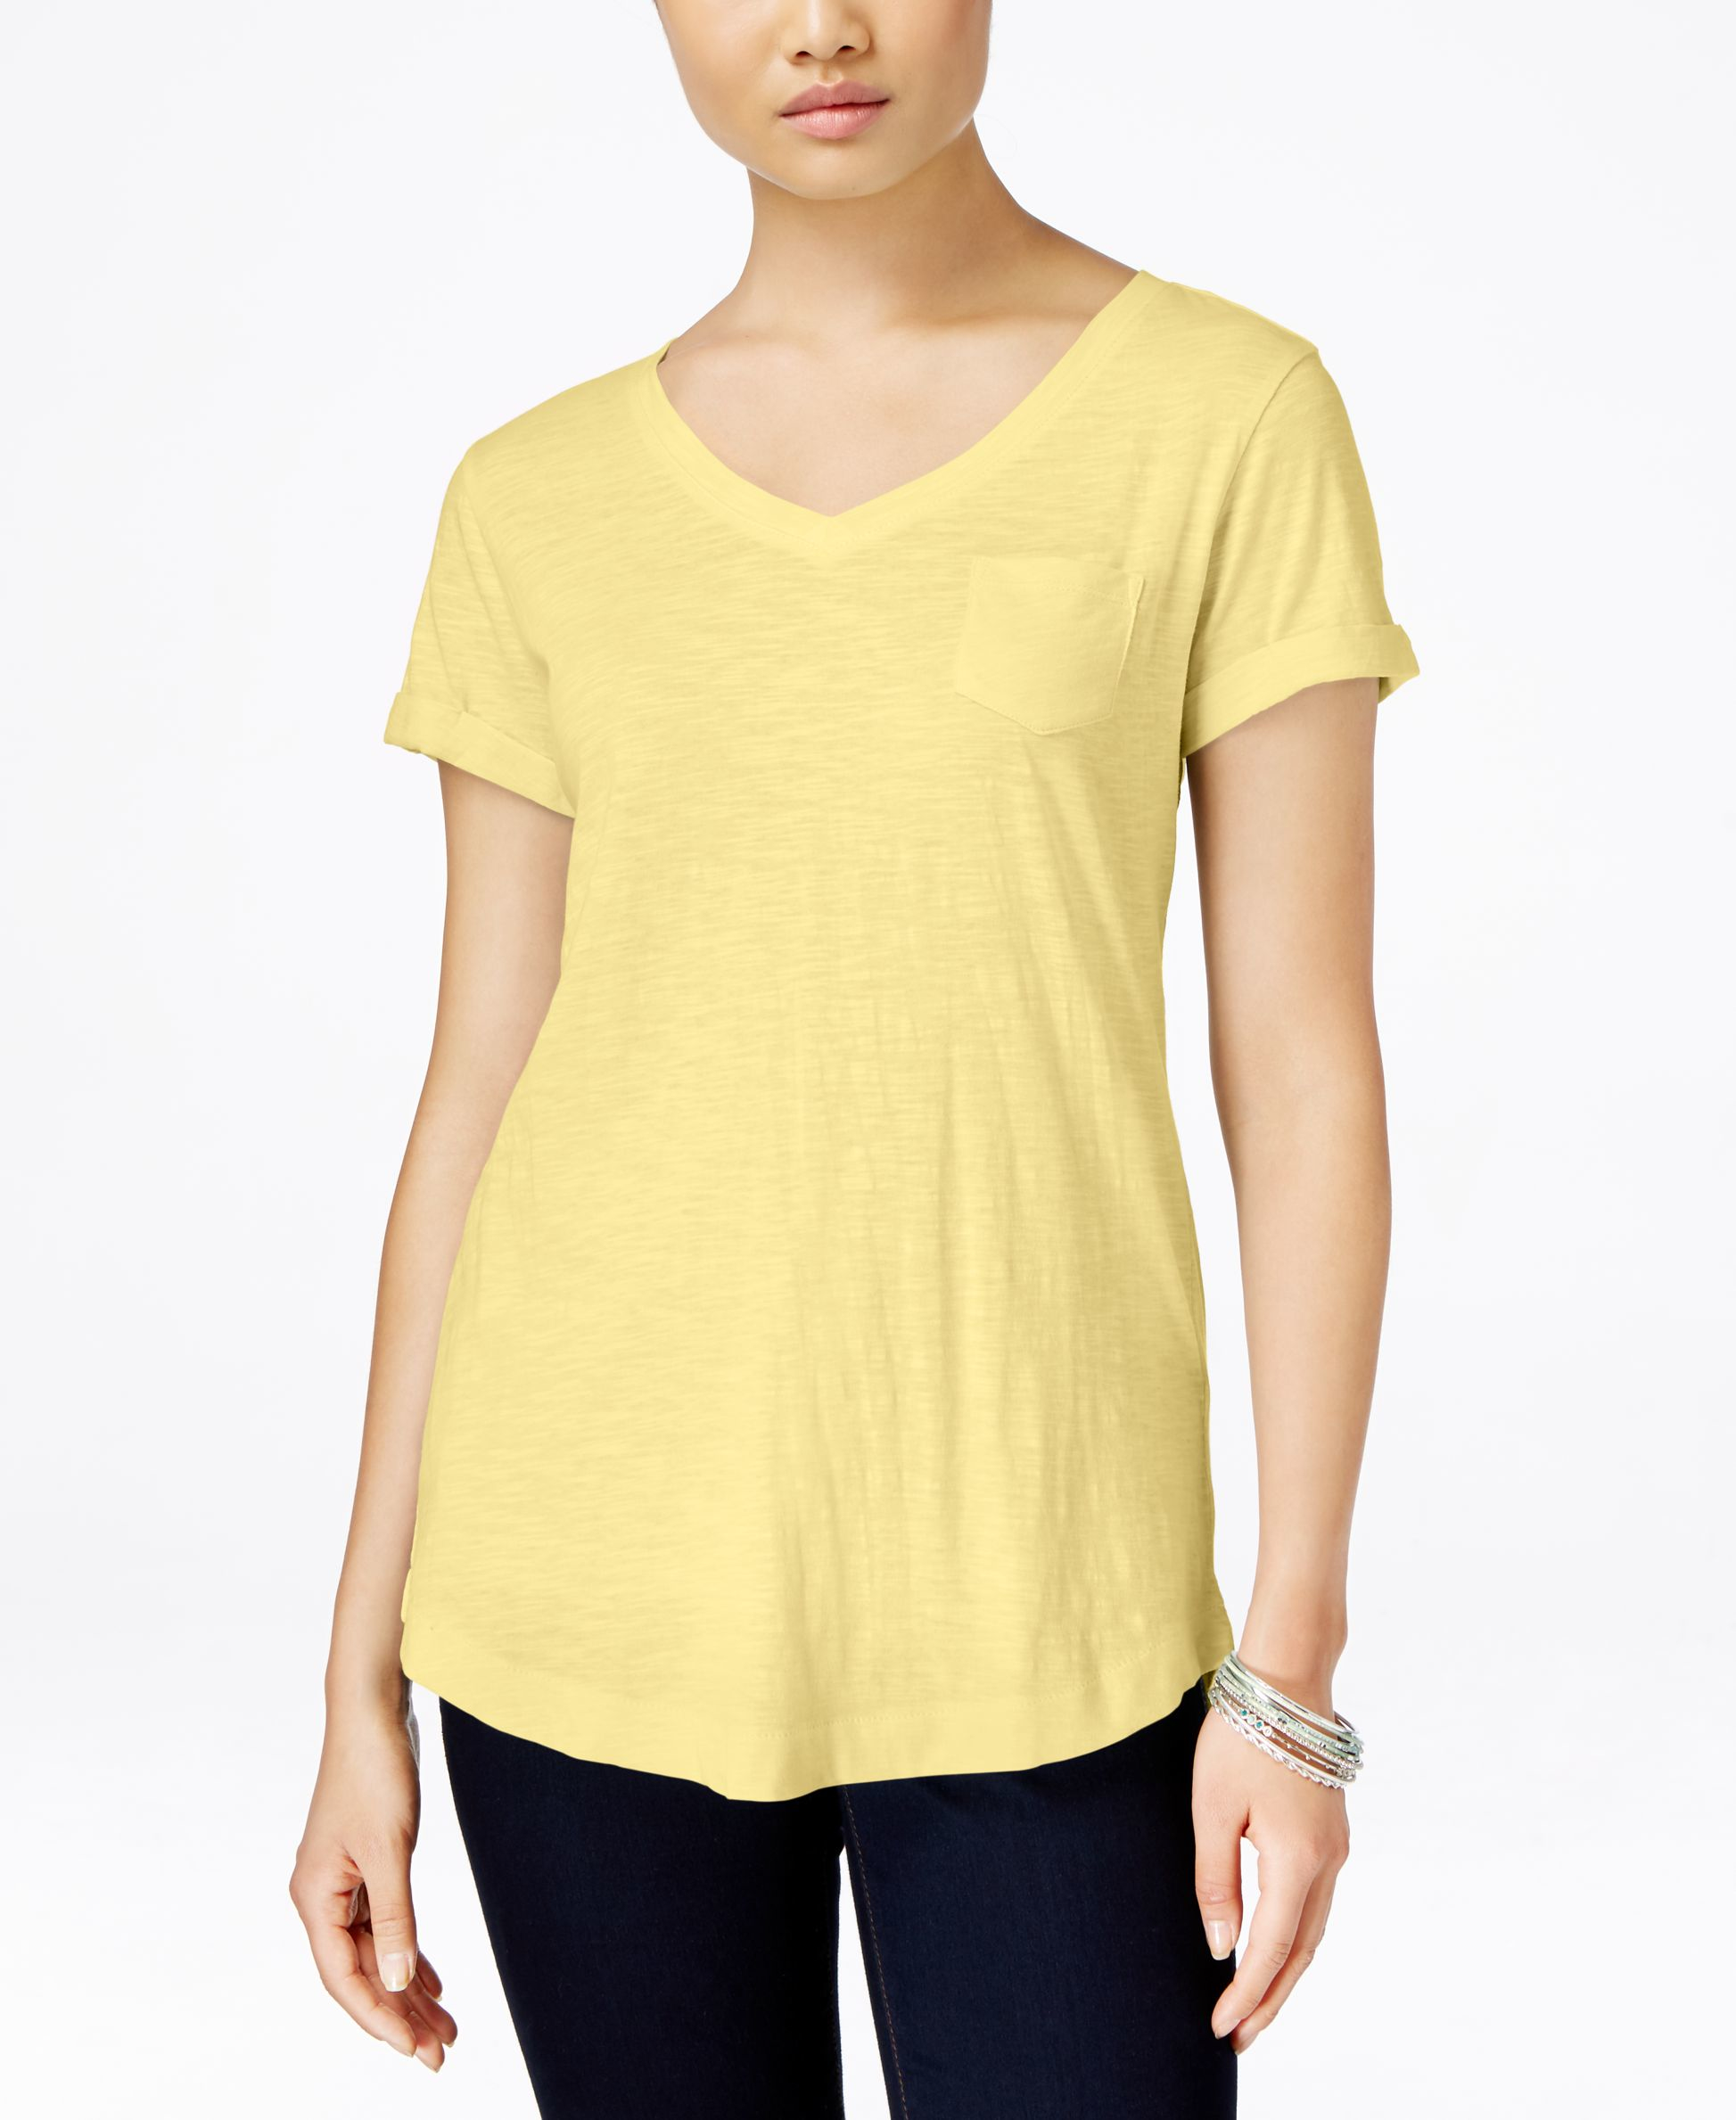 Style Co V Neck T Shirt Only At Macy 39 S In Yellow Lyst